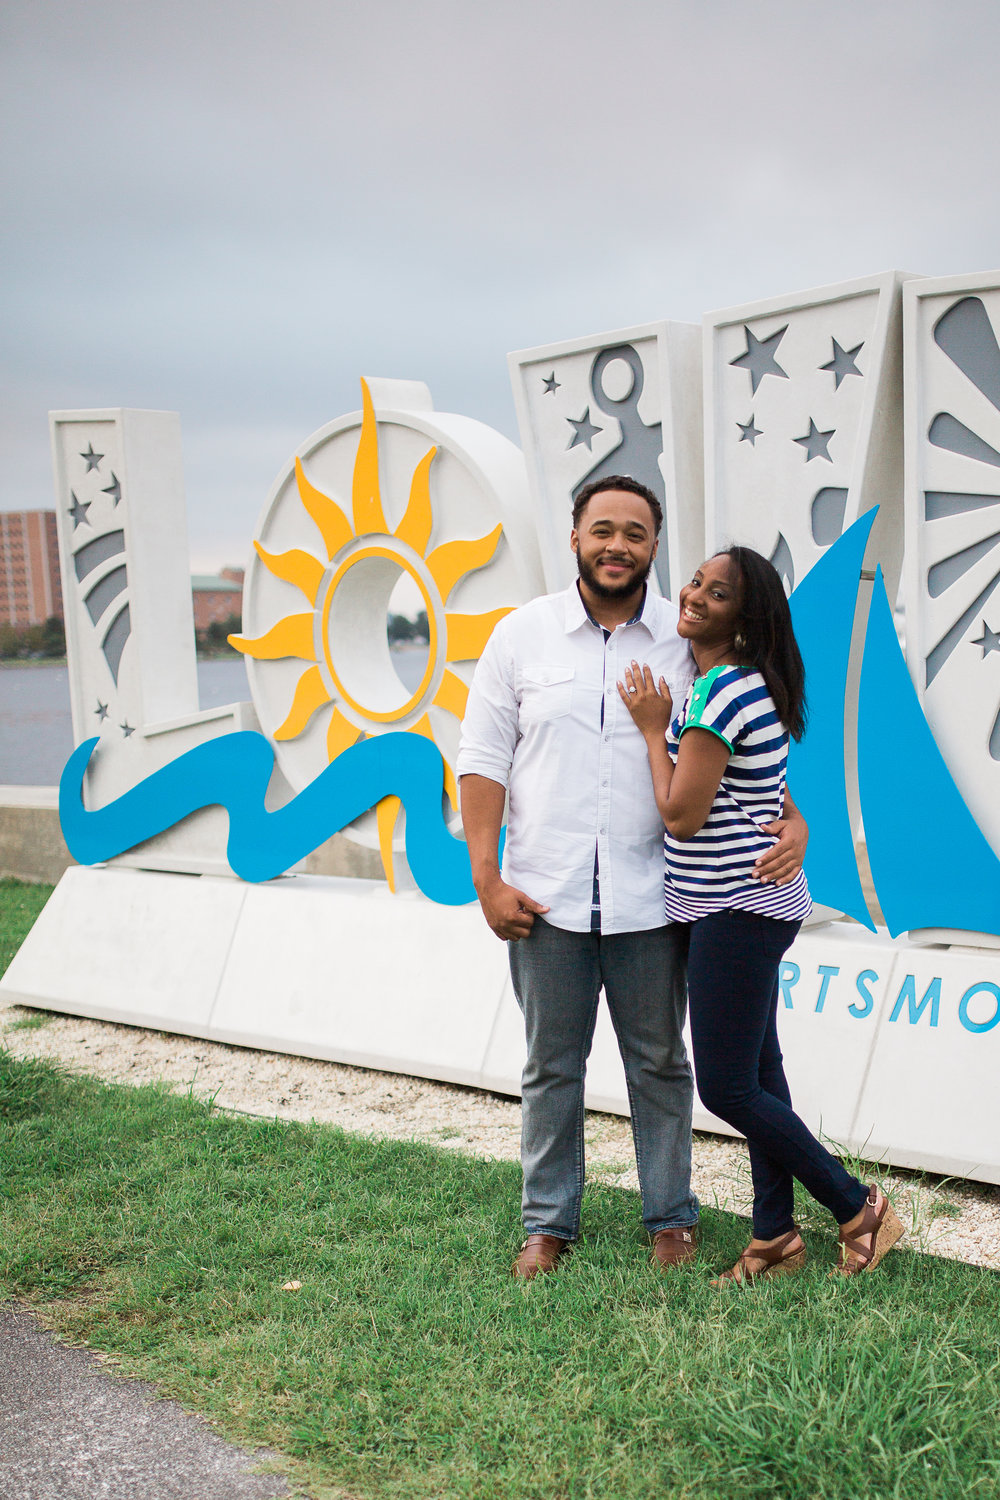 romantic_old_town_alexandria_virginia_engagement_session_by_virginia_wedding_photographer